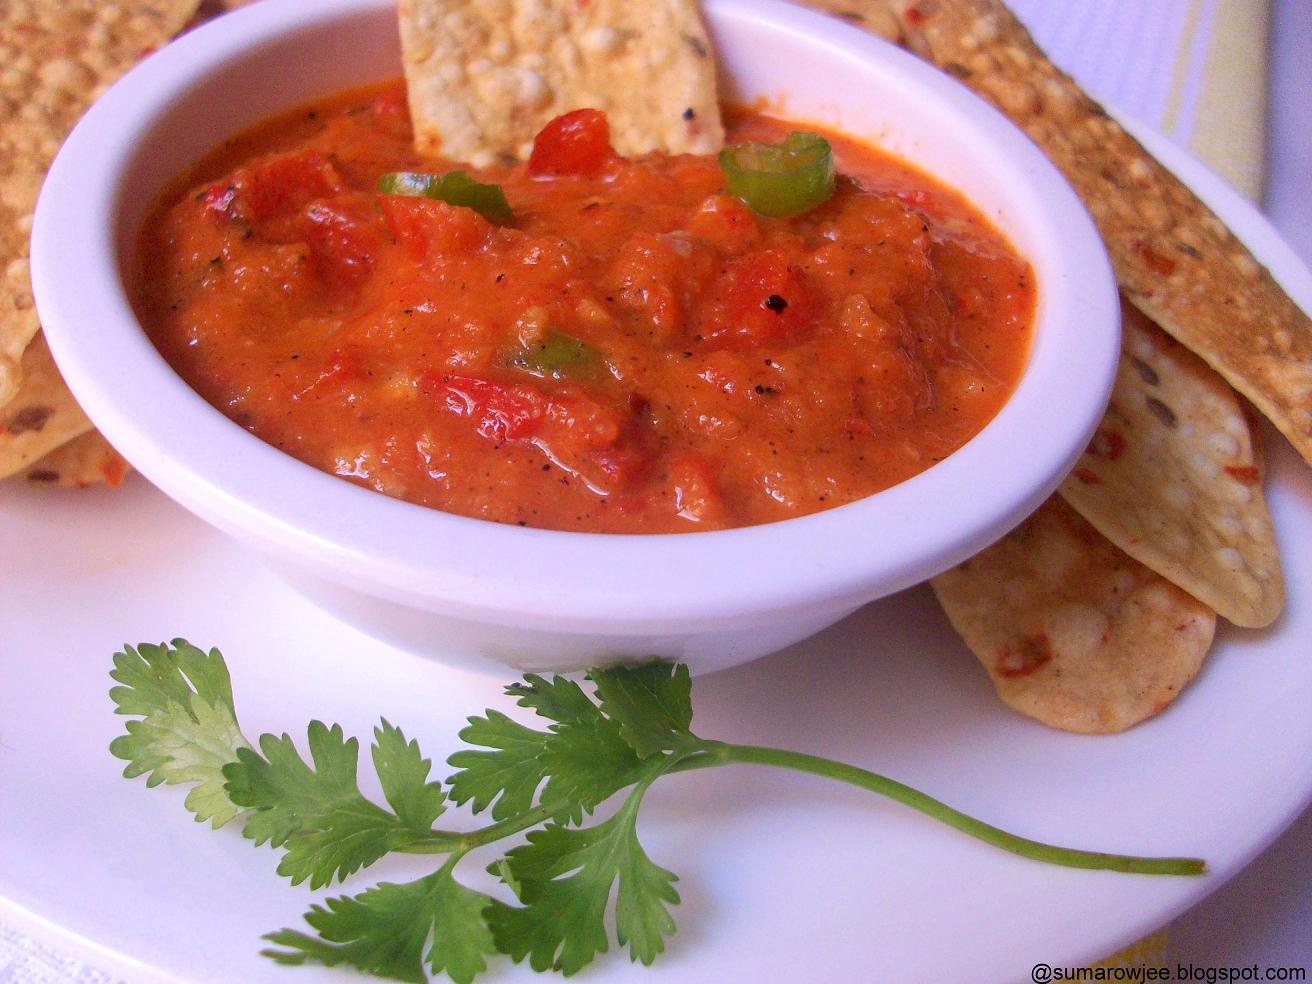 Cakes And More!: Roasted Red Bell Pepper & Garlic Dip